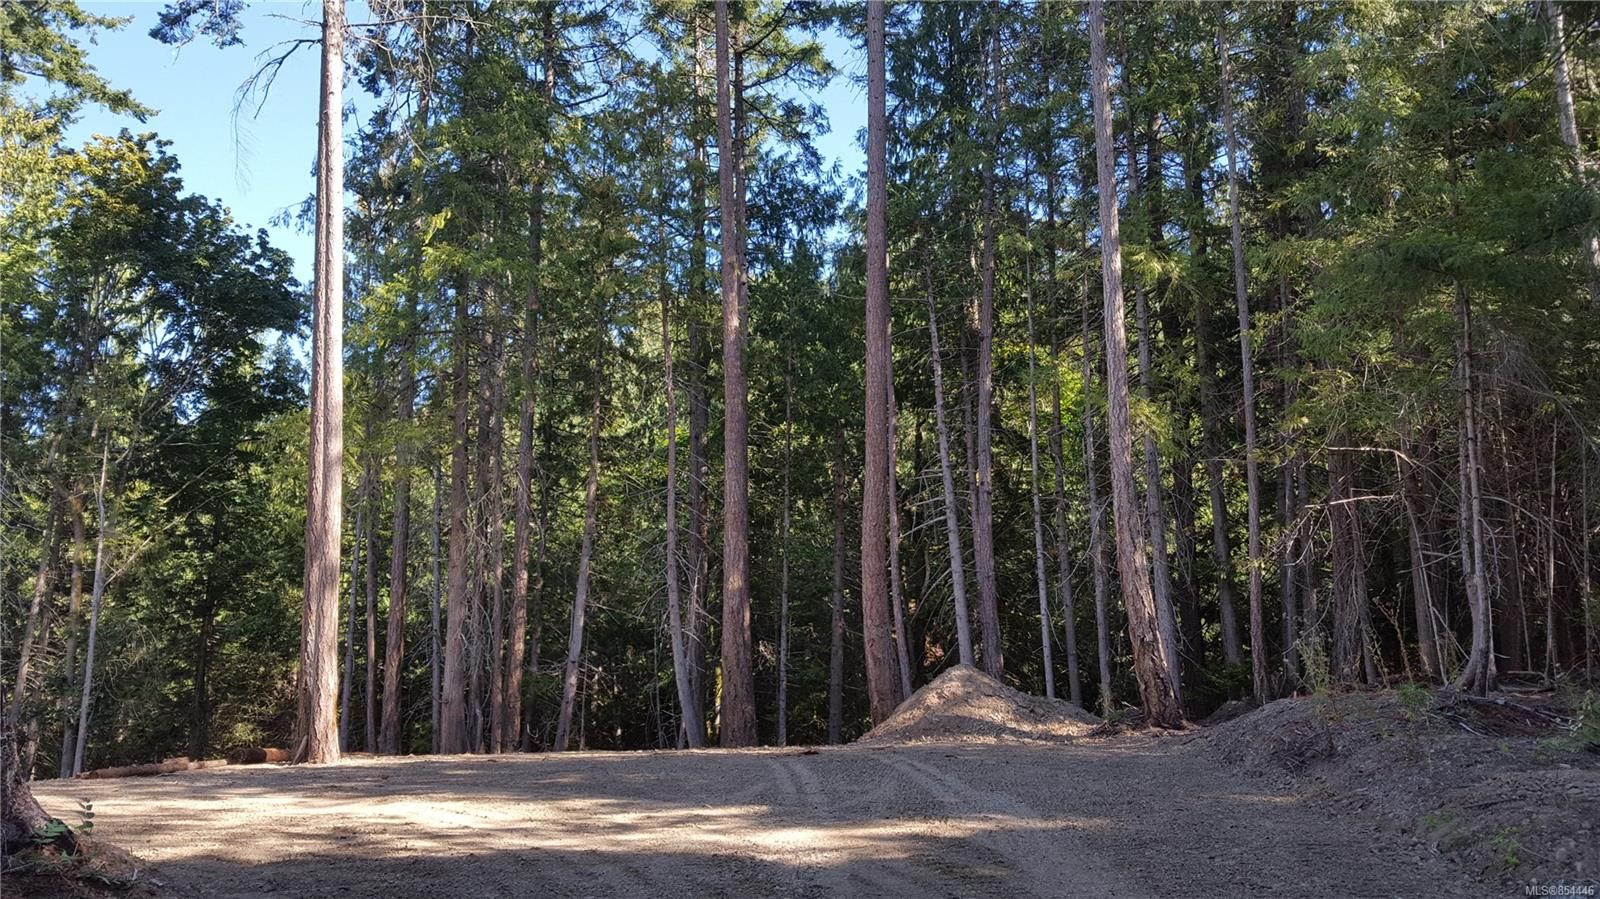 Main Photo: 3614 Jolly Roger Cres in : GI Pender Island Land for sale (Gulf Islands)  : MLS®# 854446